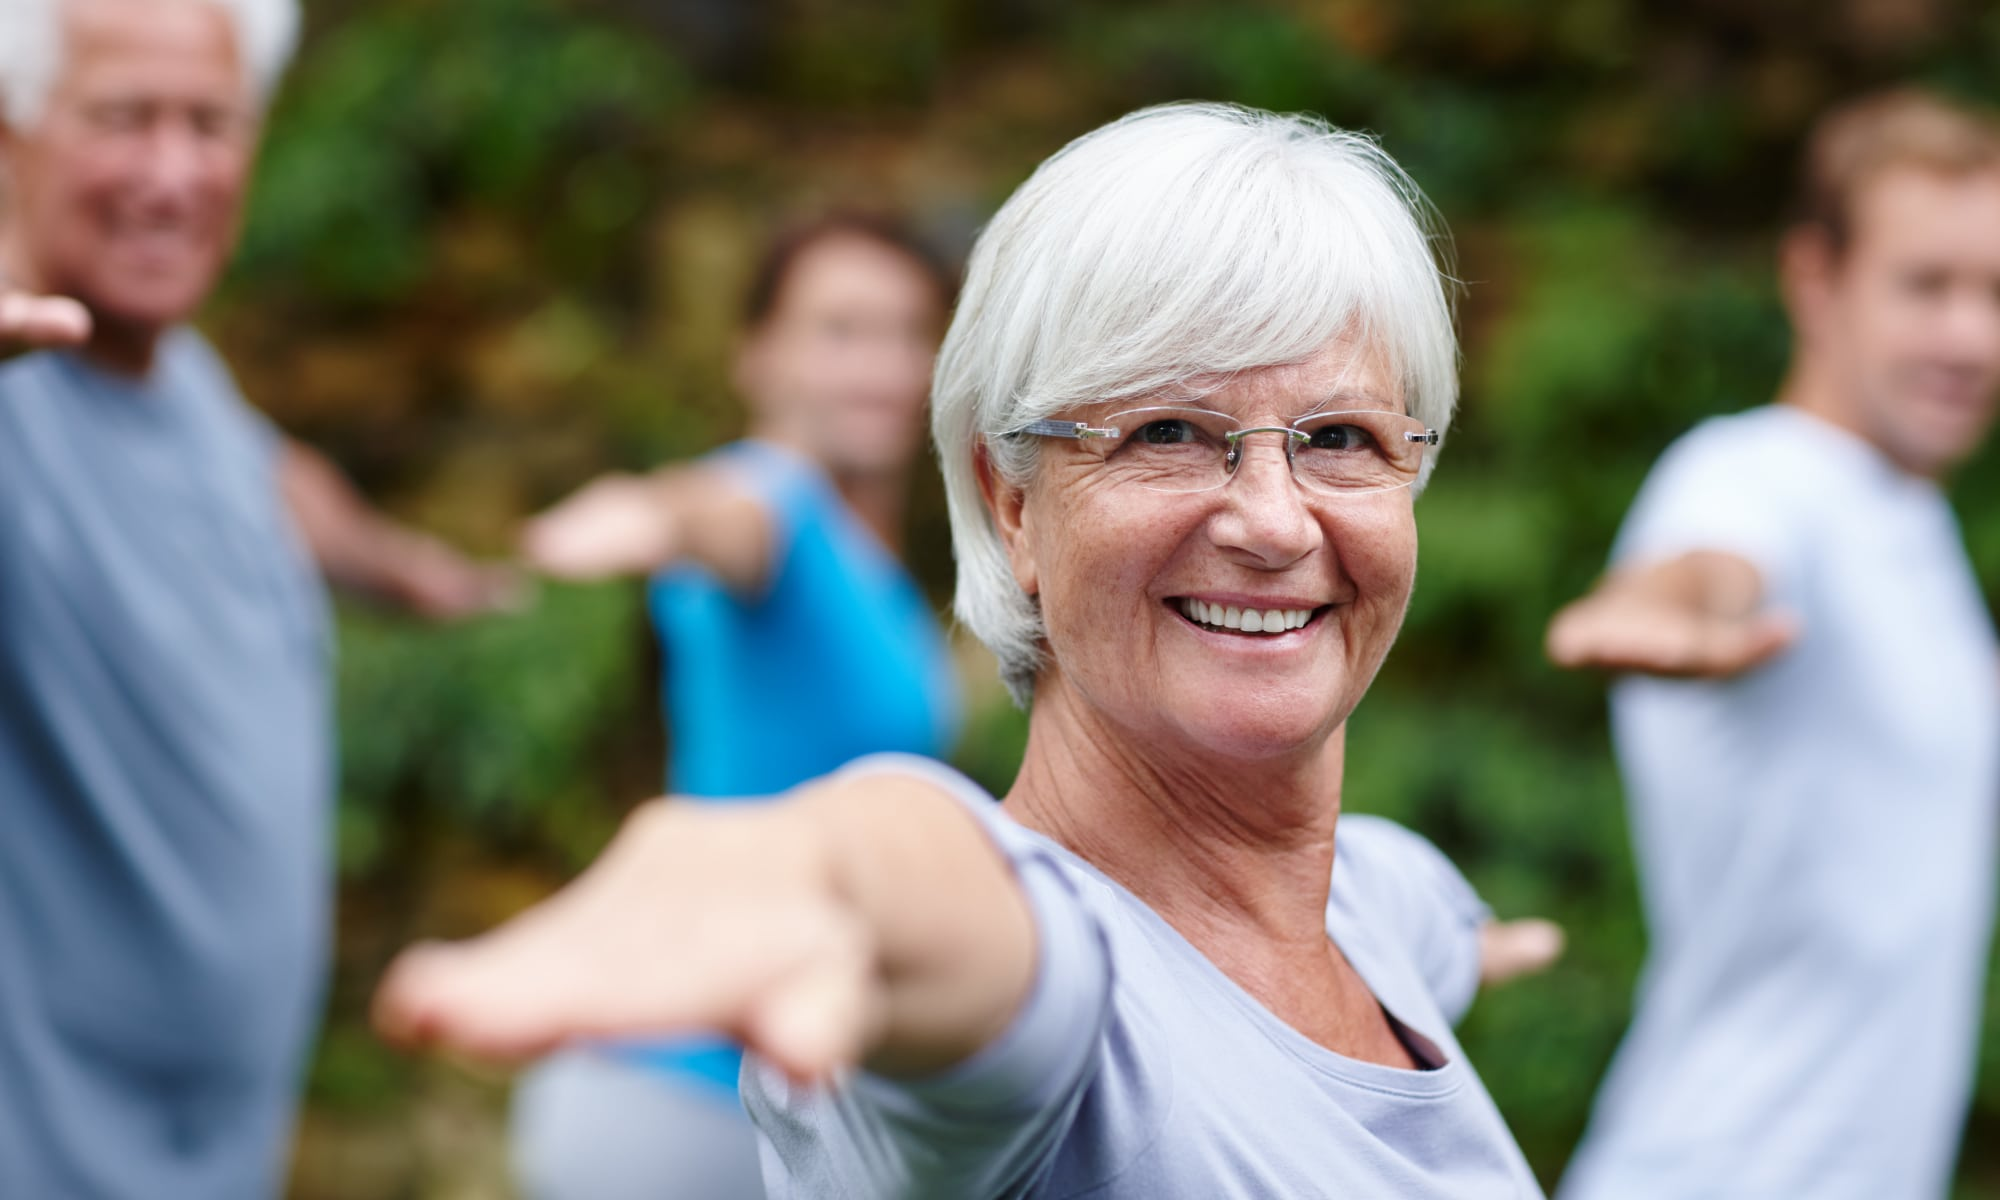 Residents group exercising outdoors